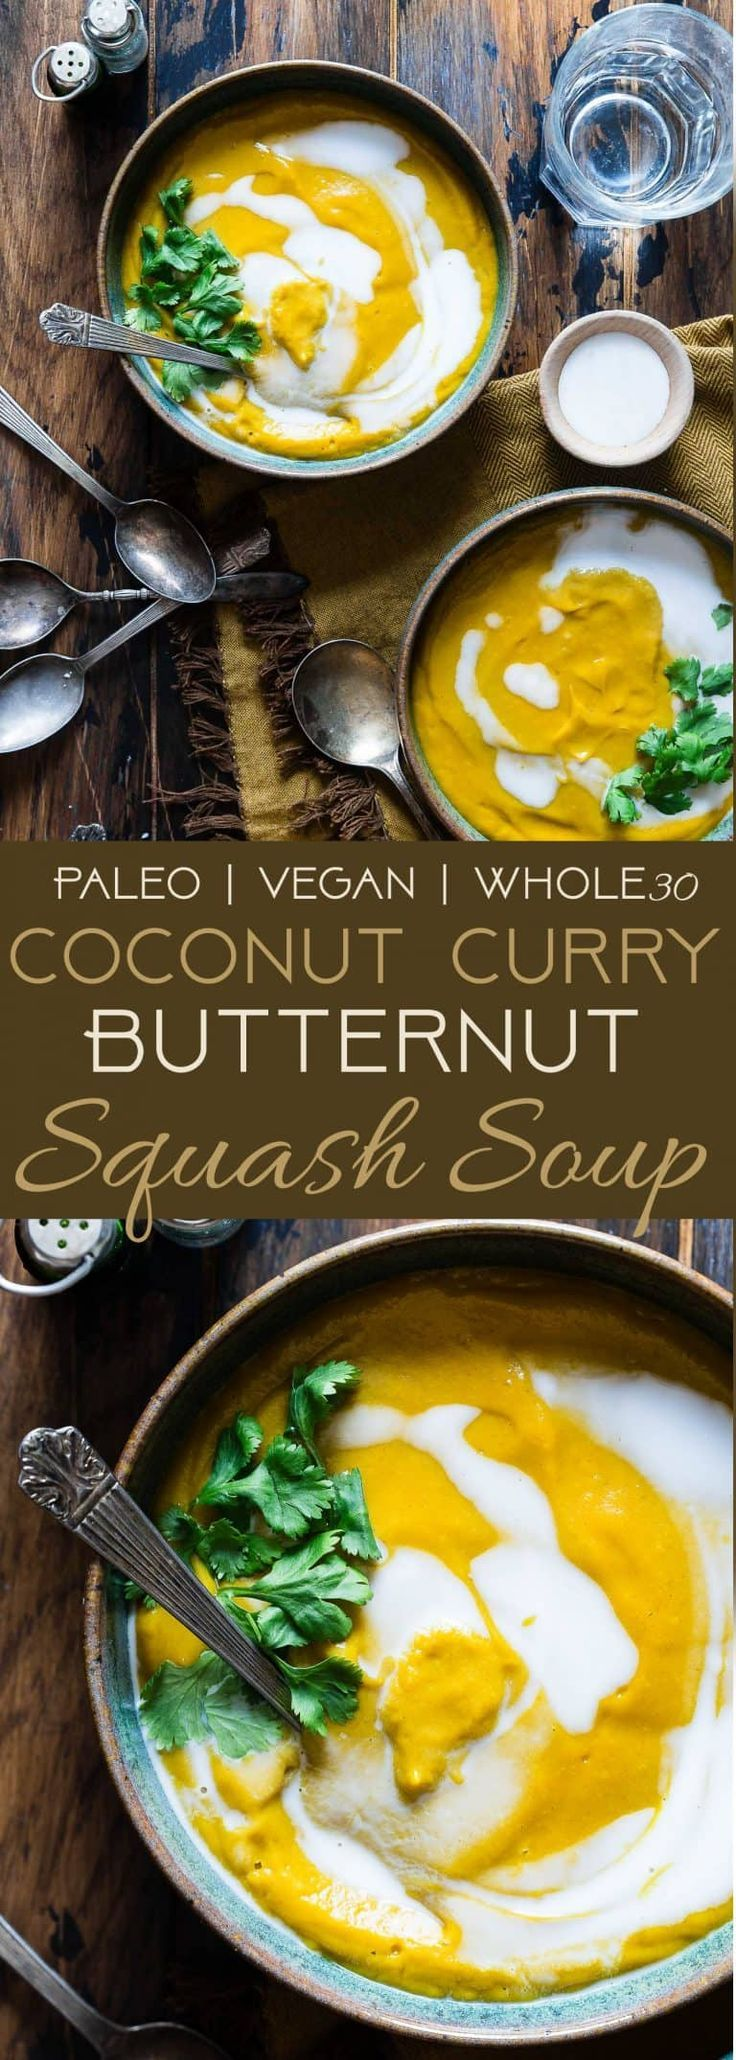 Paleo Vegan Butternut Squash Soup with Curry | Food Faith Fitness #butternutsquashsoup